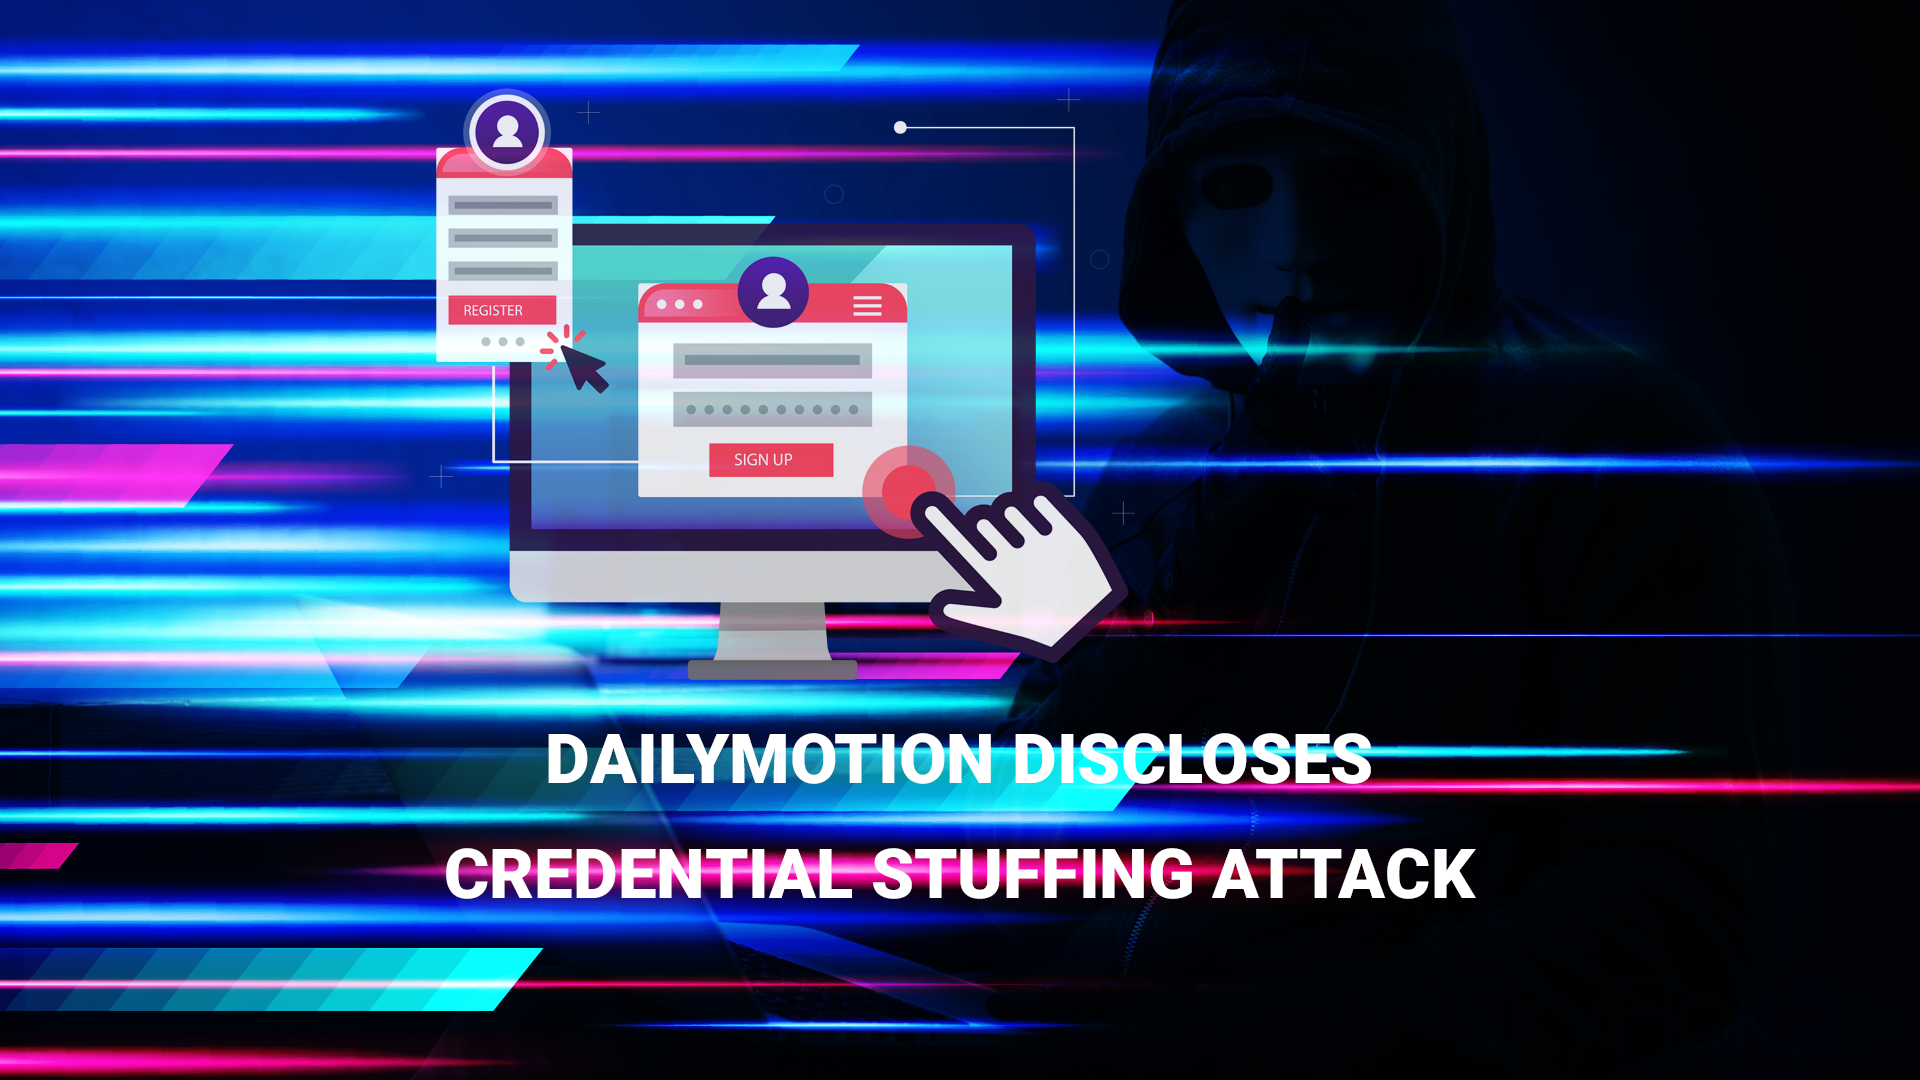 DailyMotion discloses credential stuffing attack